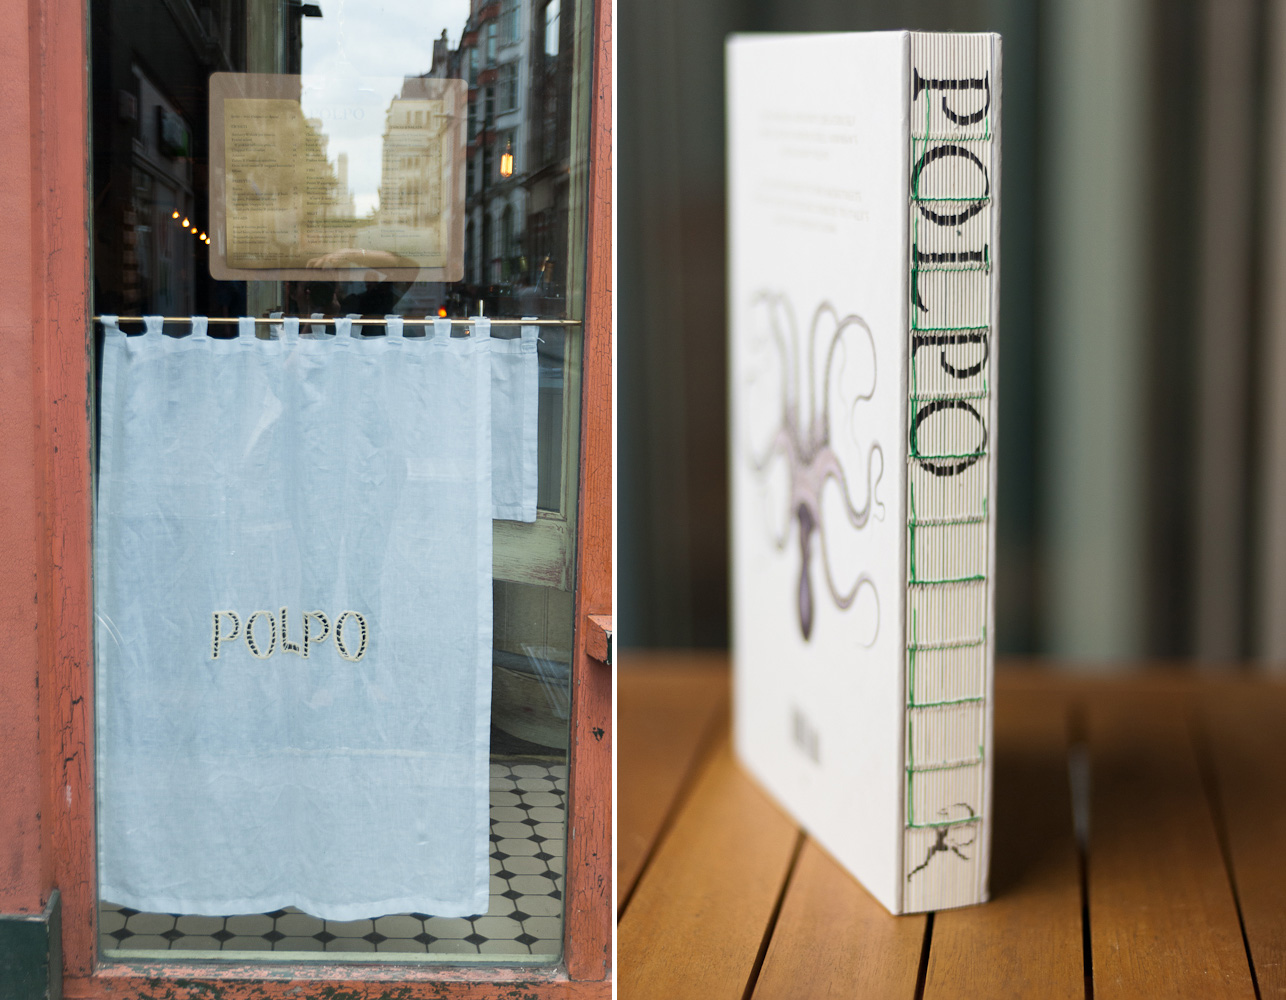 Polpo in Soho, London